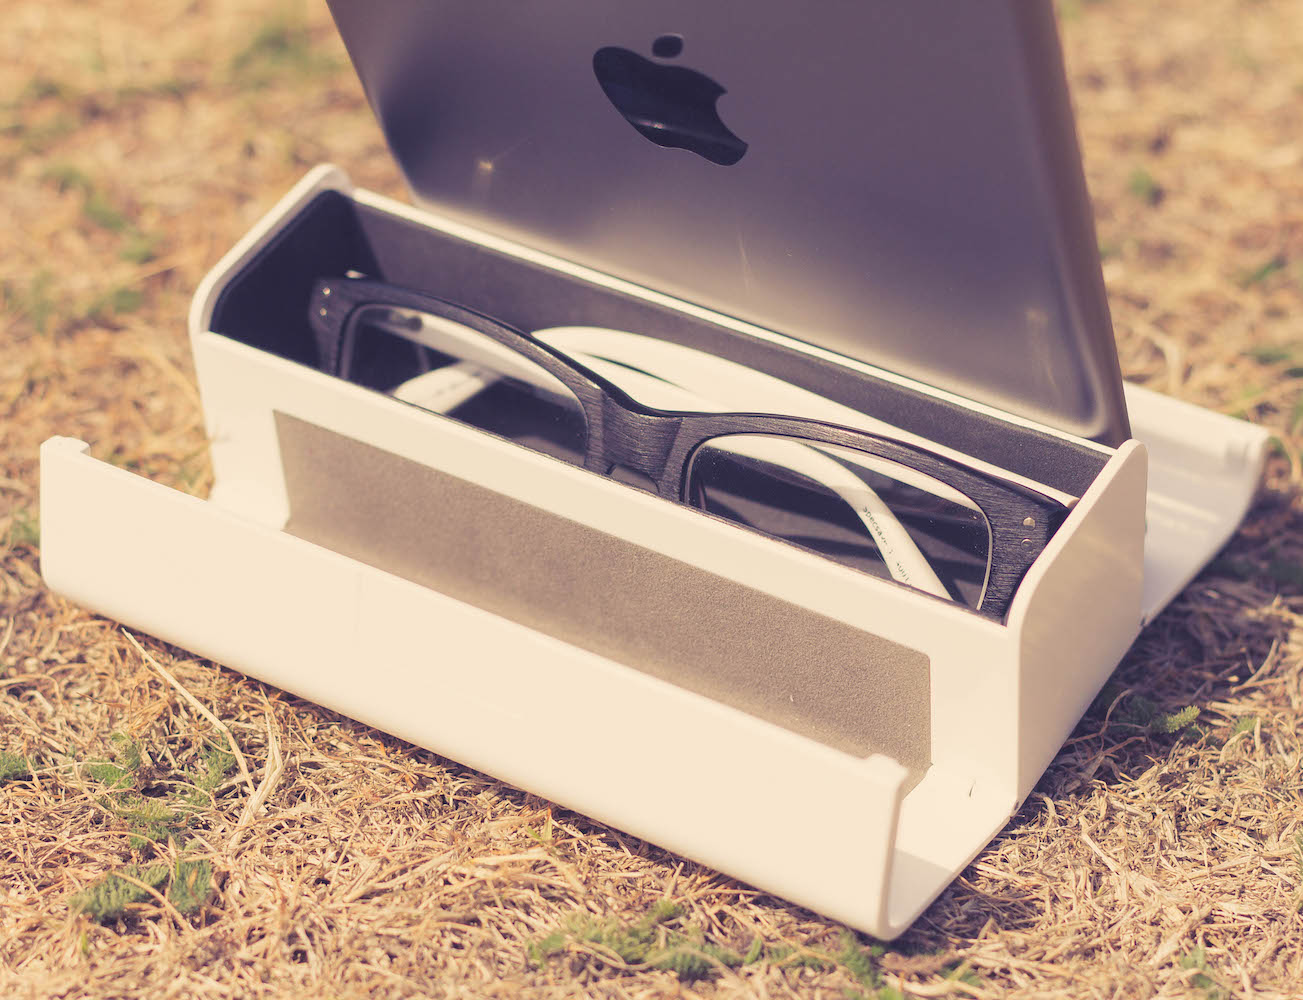 BOB – A Home For Your Glasses And Devices